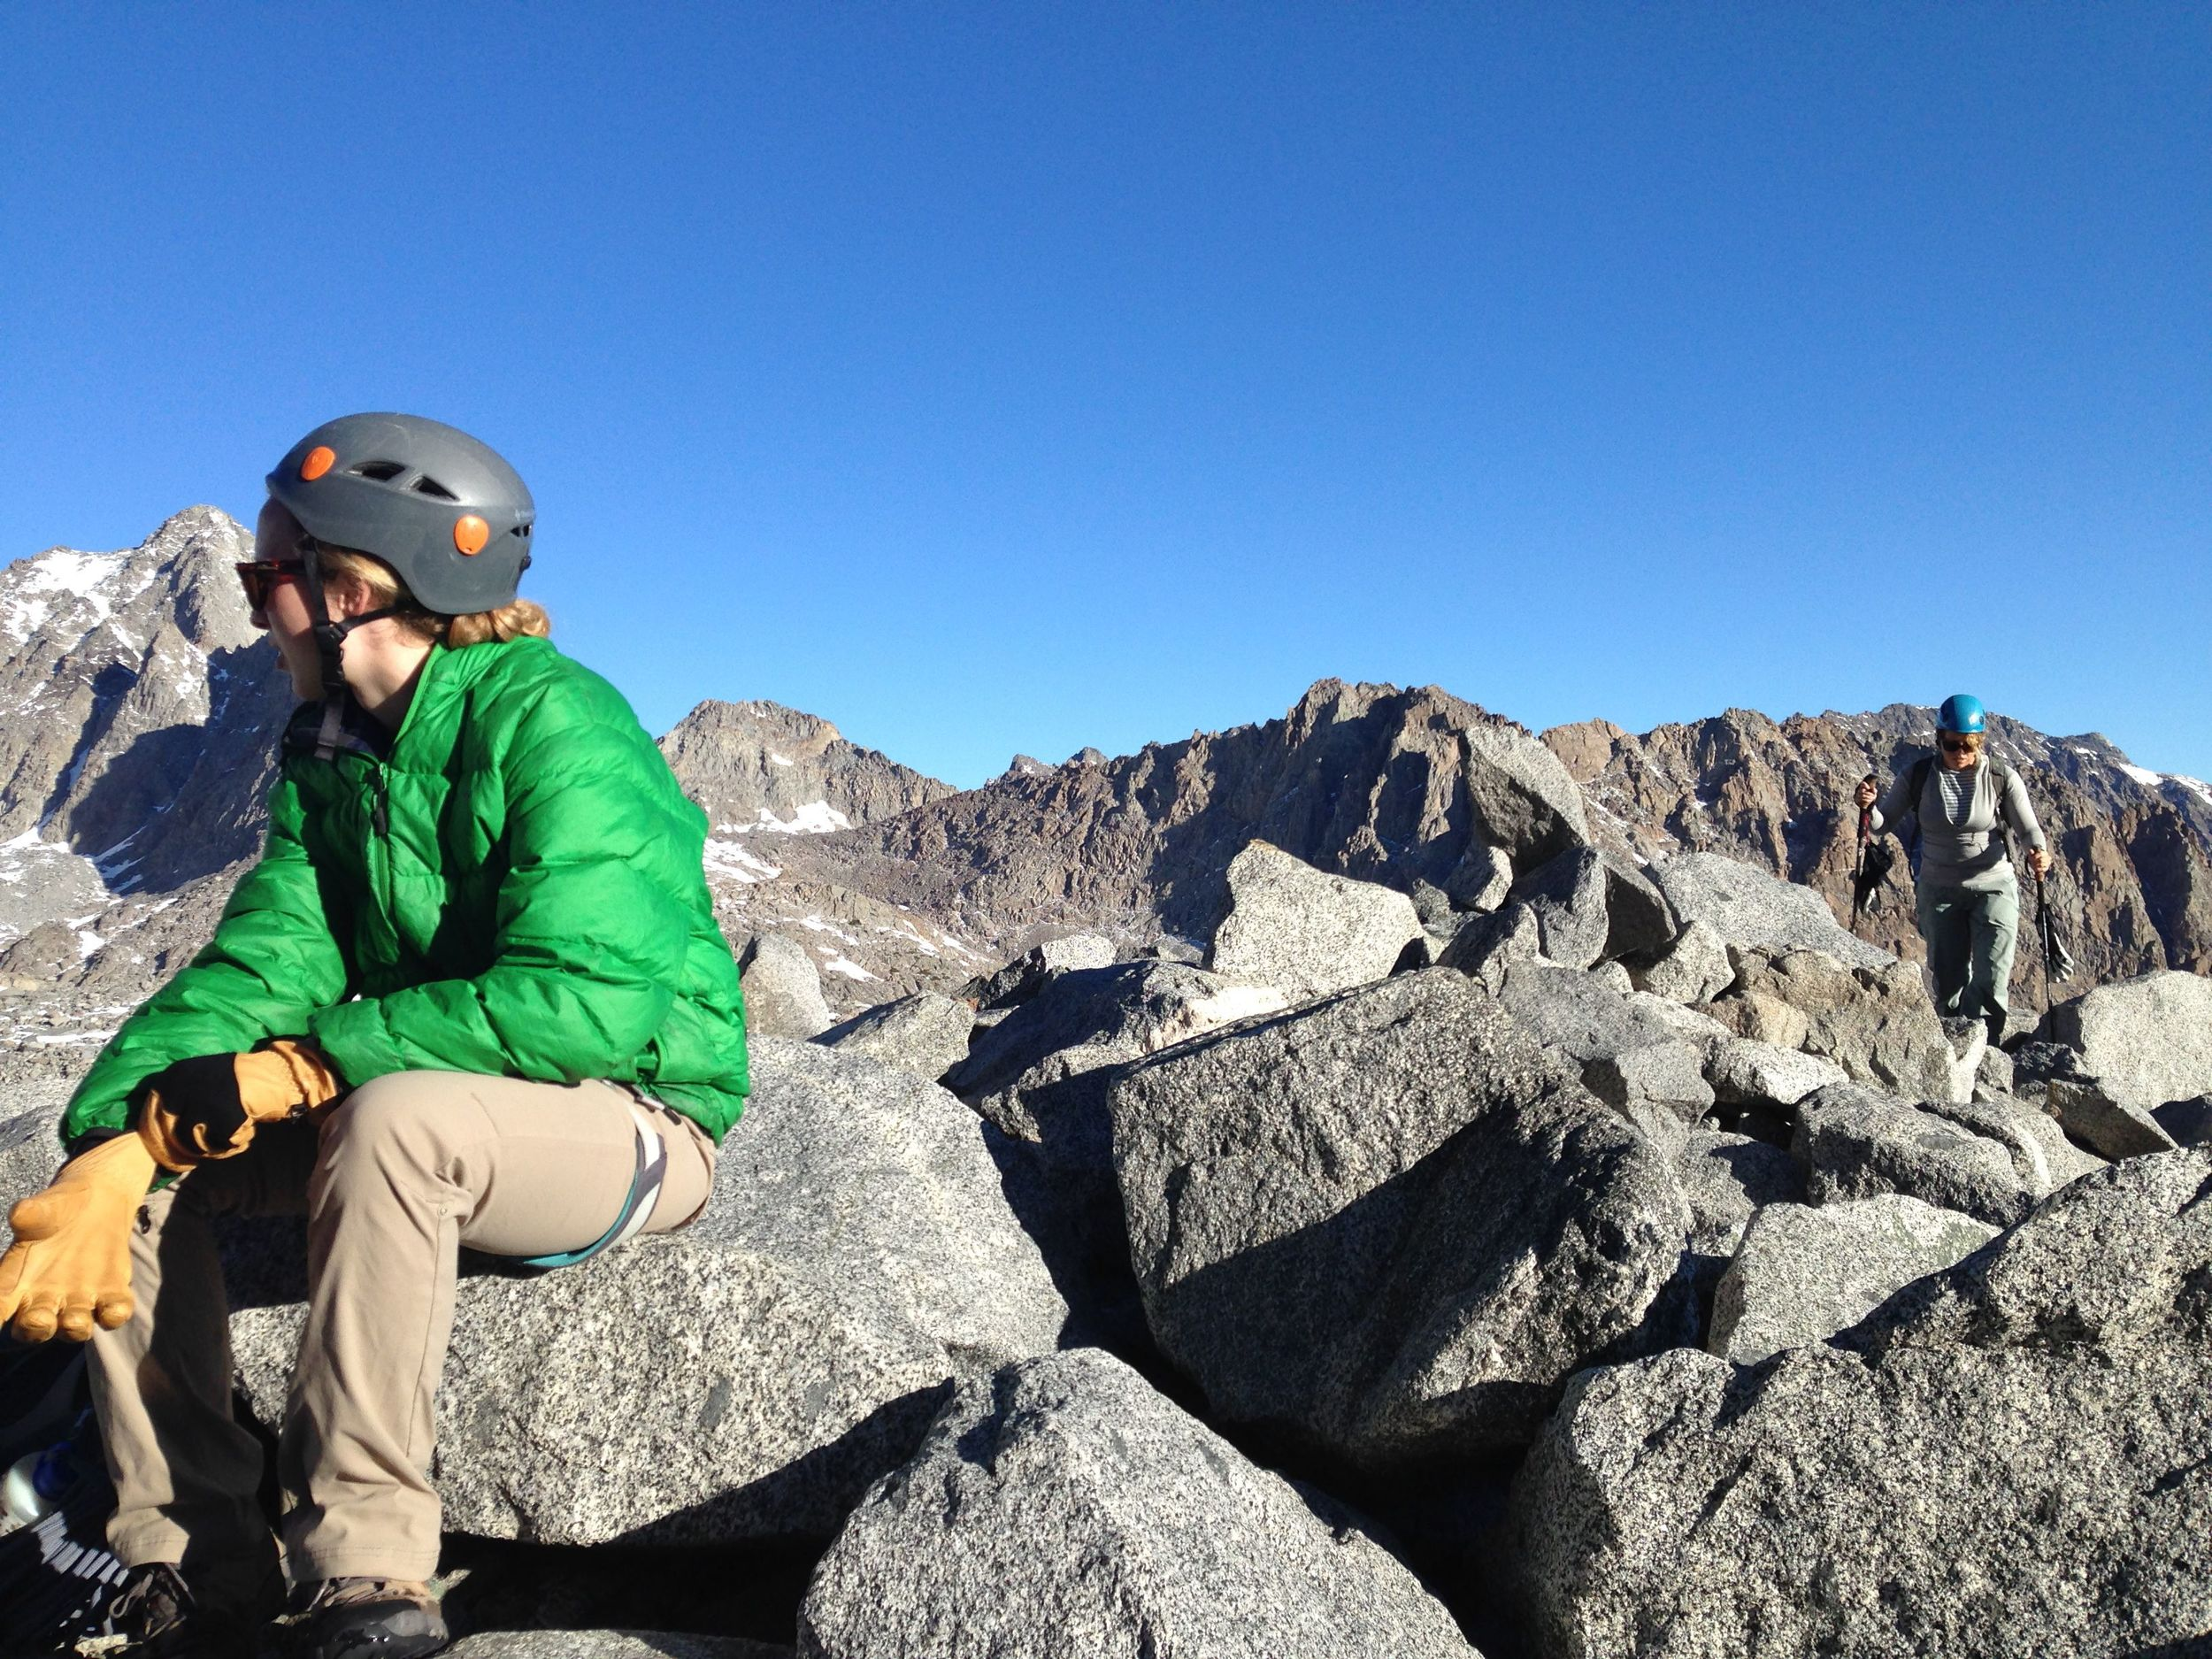 corinne taking in the view of mt sill